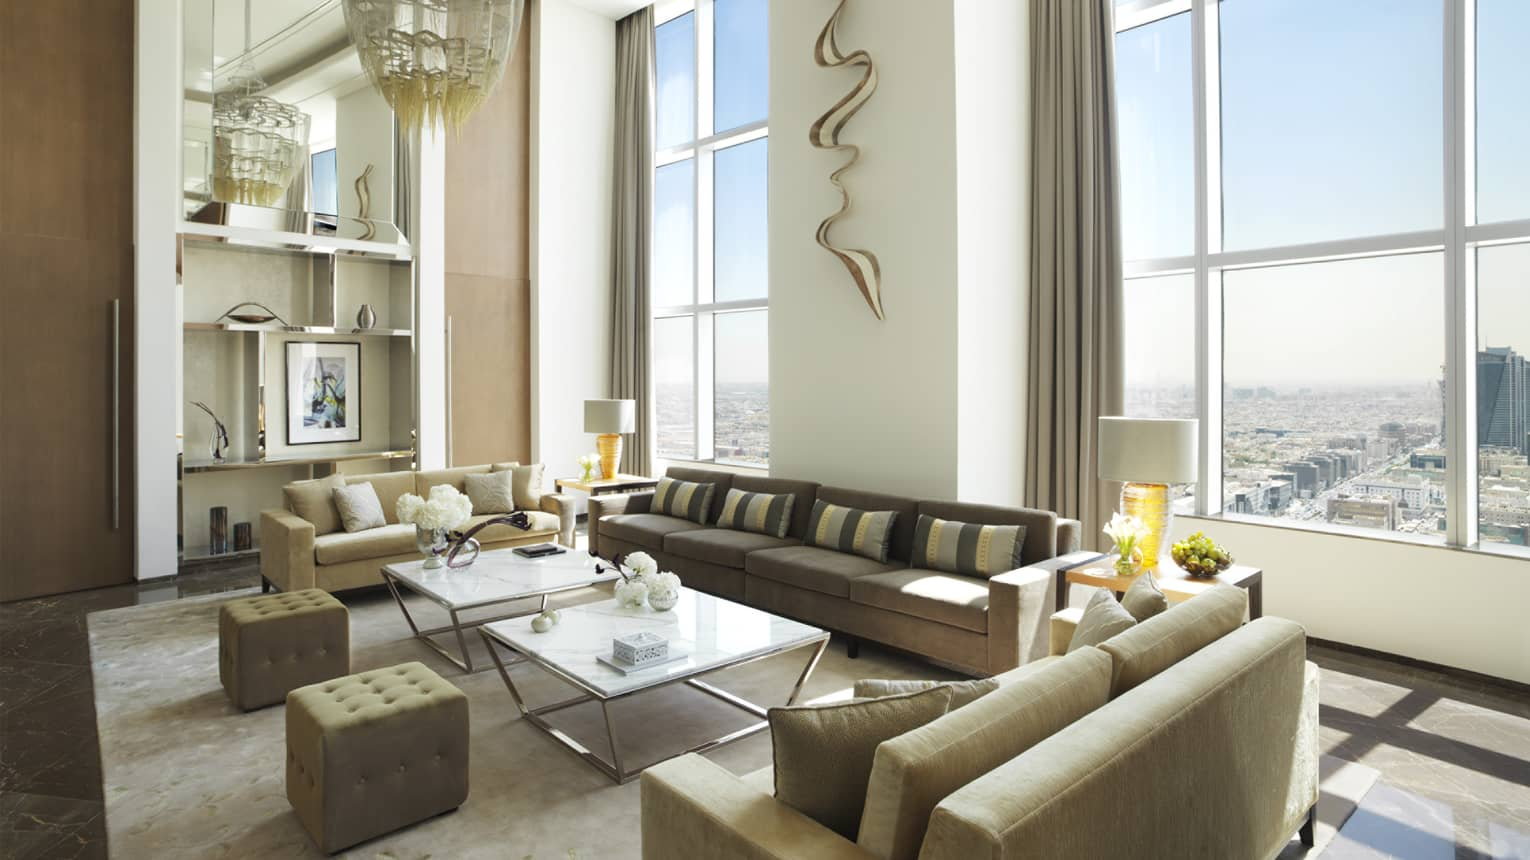 Kingdom Suite with tall ceilings and windows, three sofas, two chairs and coffee tables, large chandelier and wall sculpture